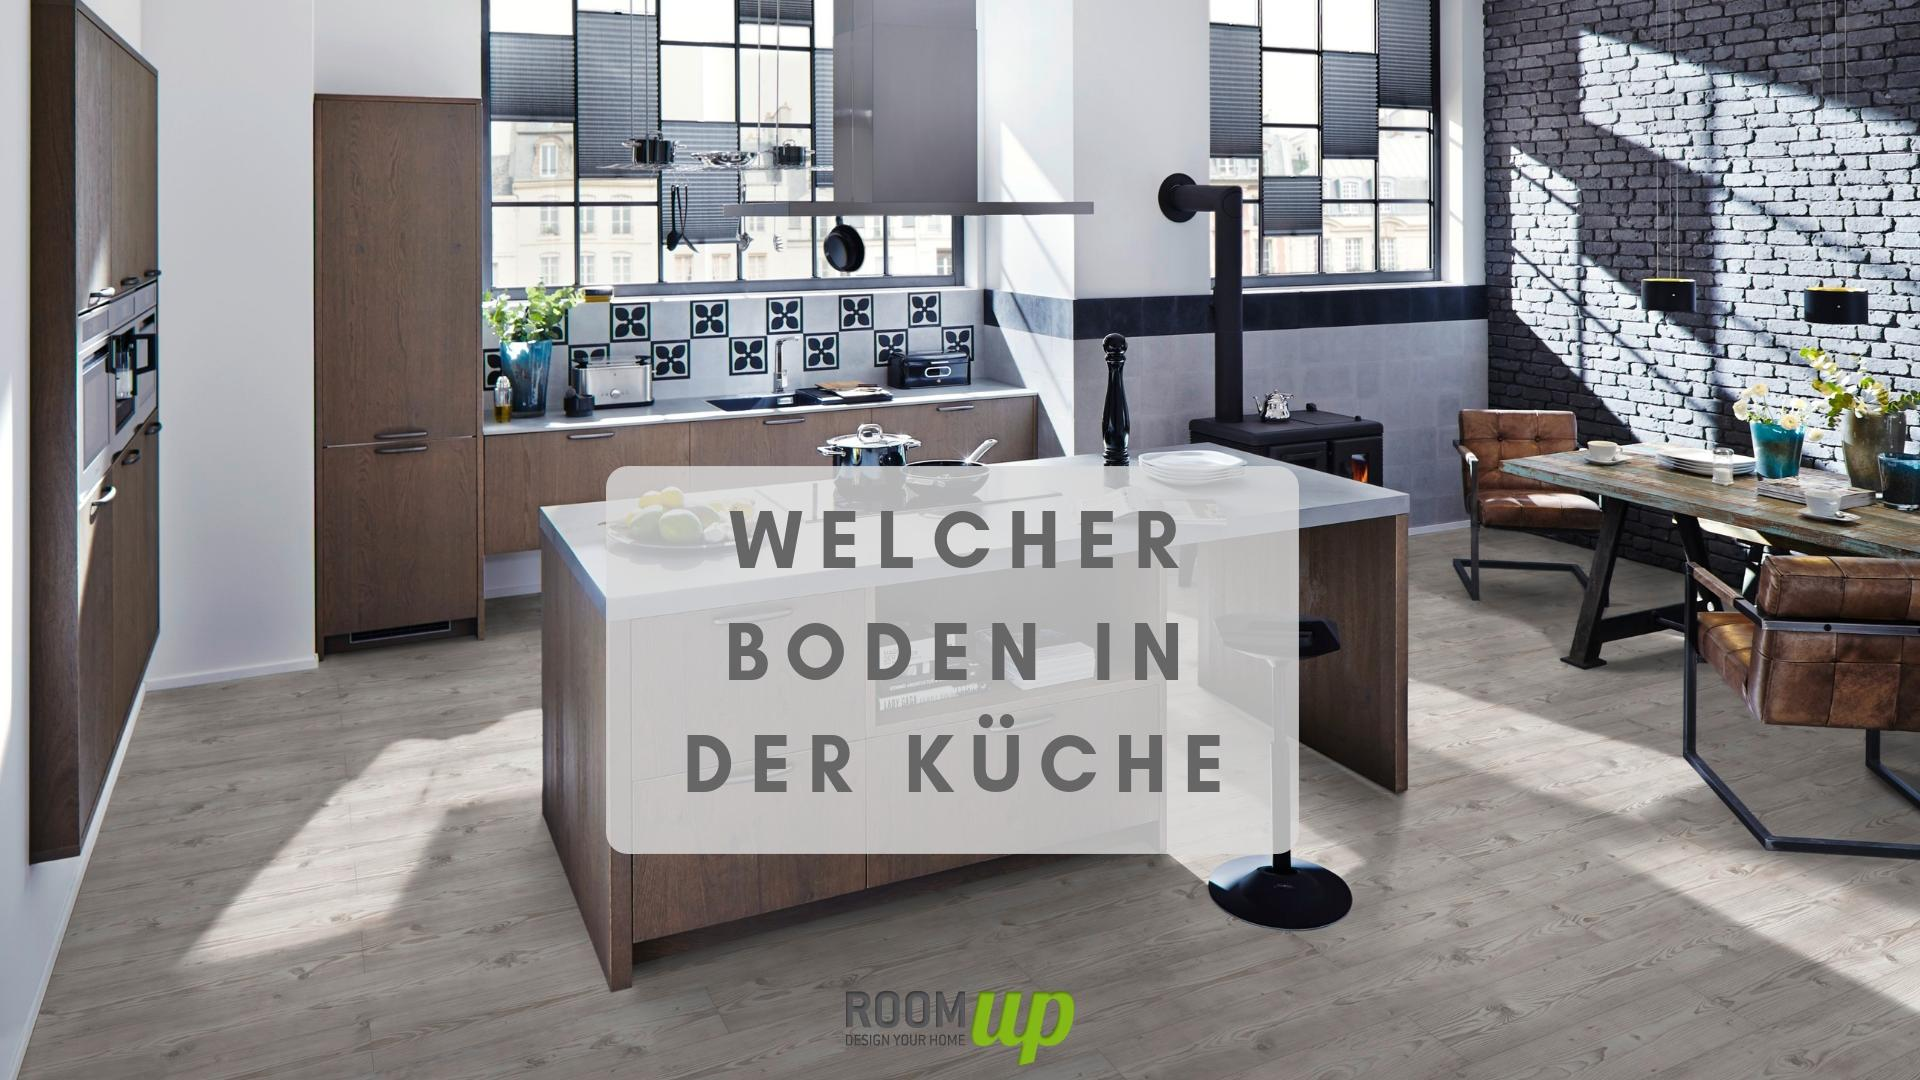 Welcher Bodenbelag in der Küche? Room Up Magazin